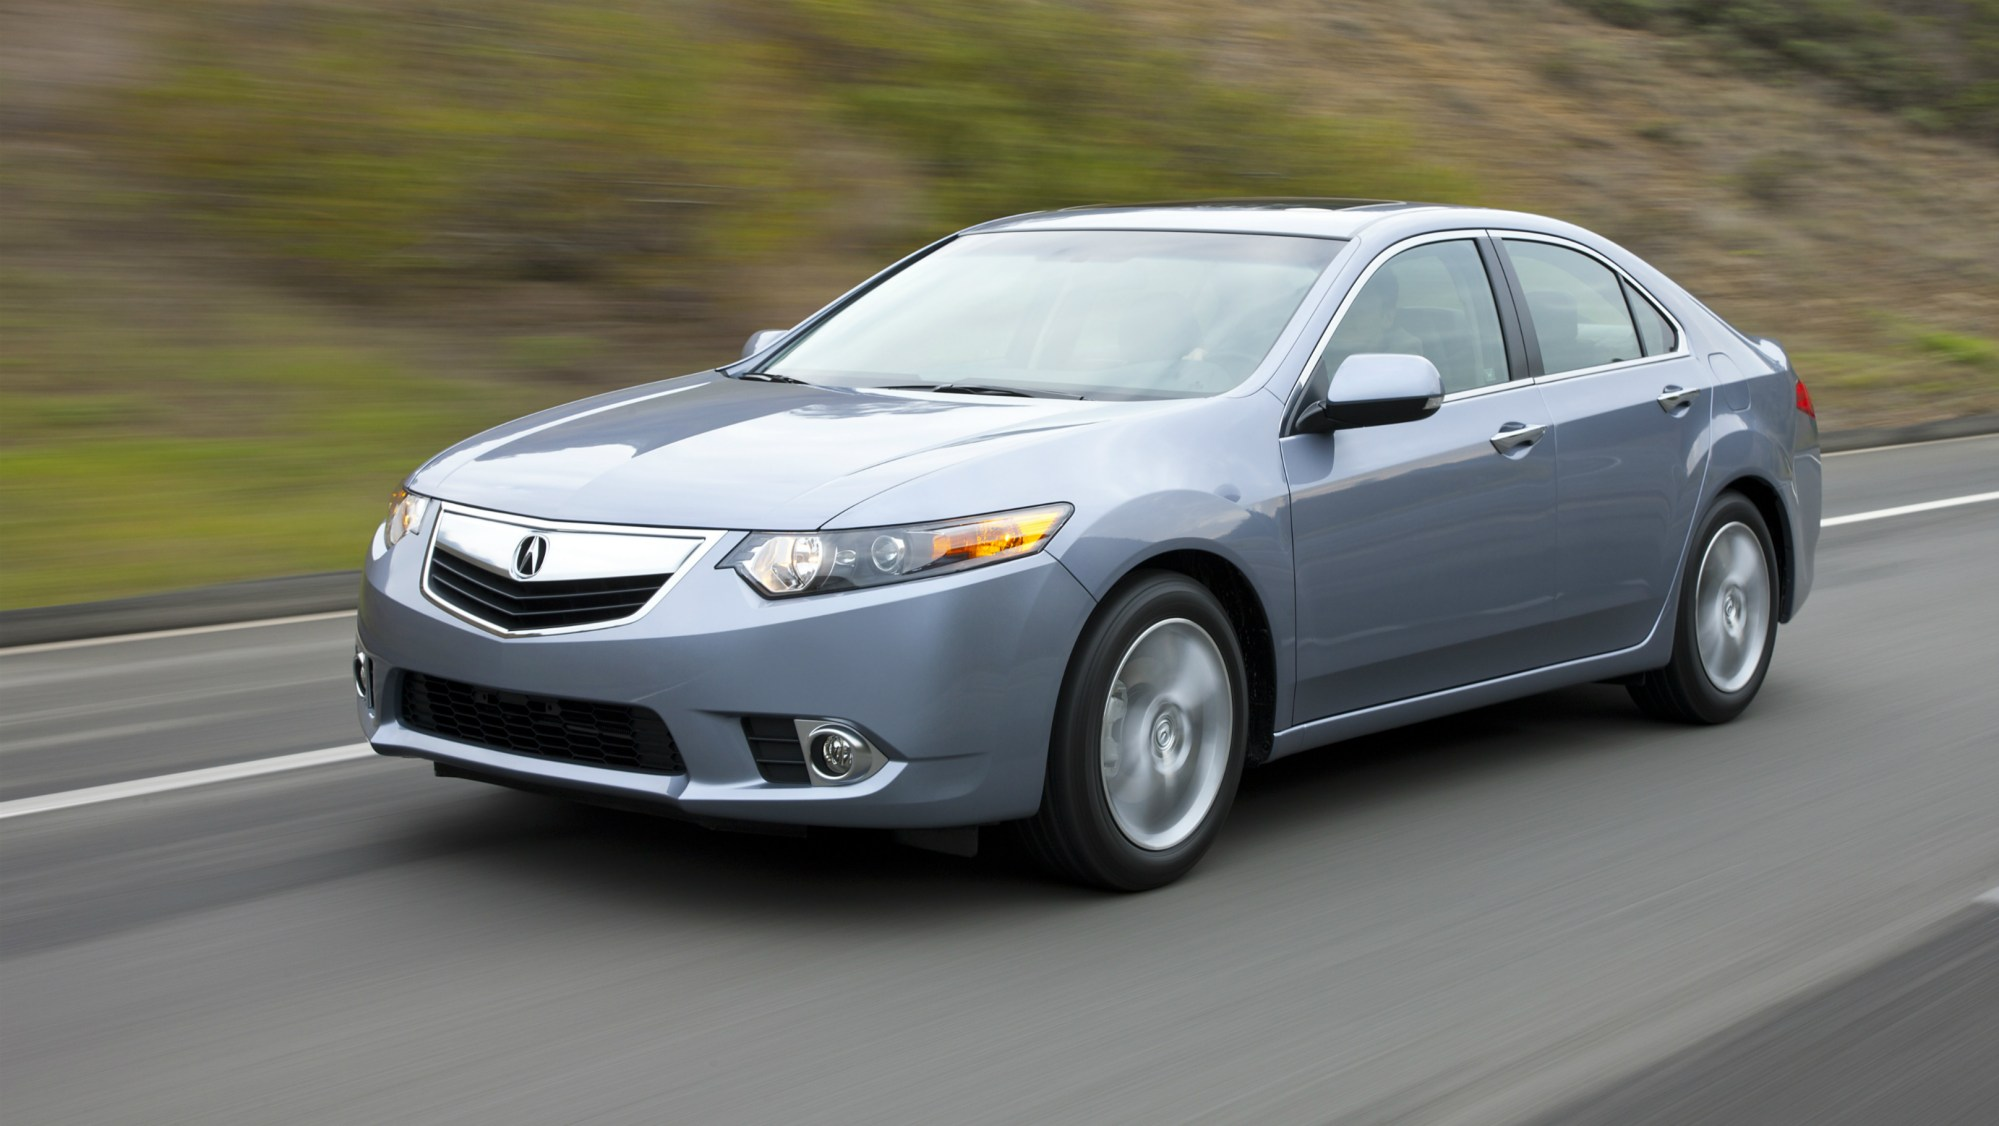 hight resolution of used car of the year 2009 2014 acura tsx